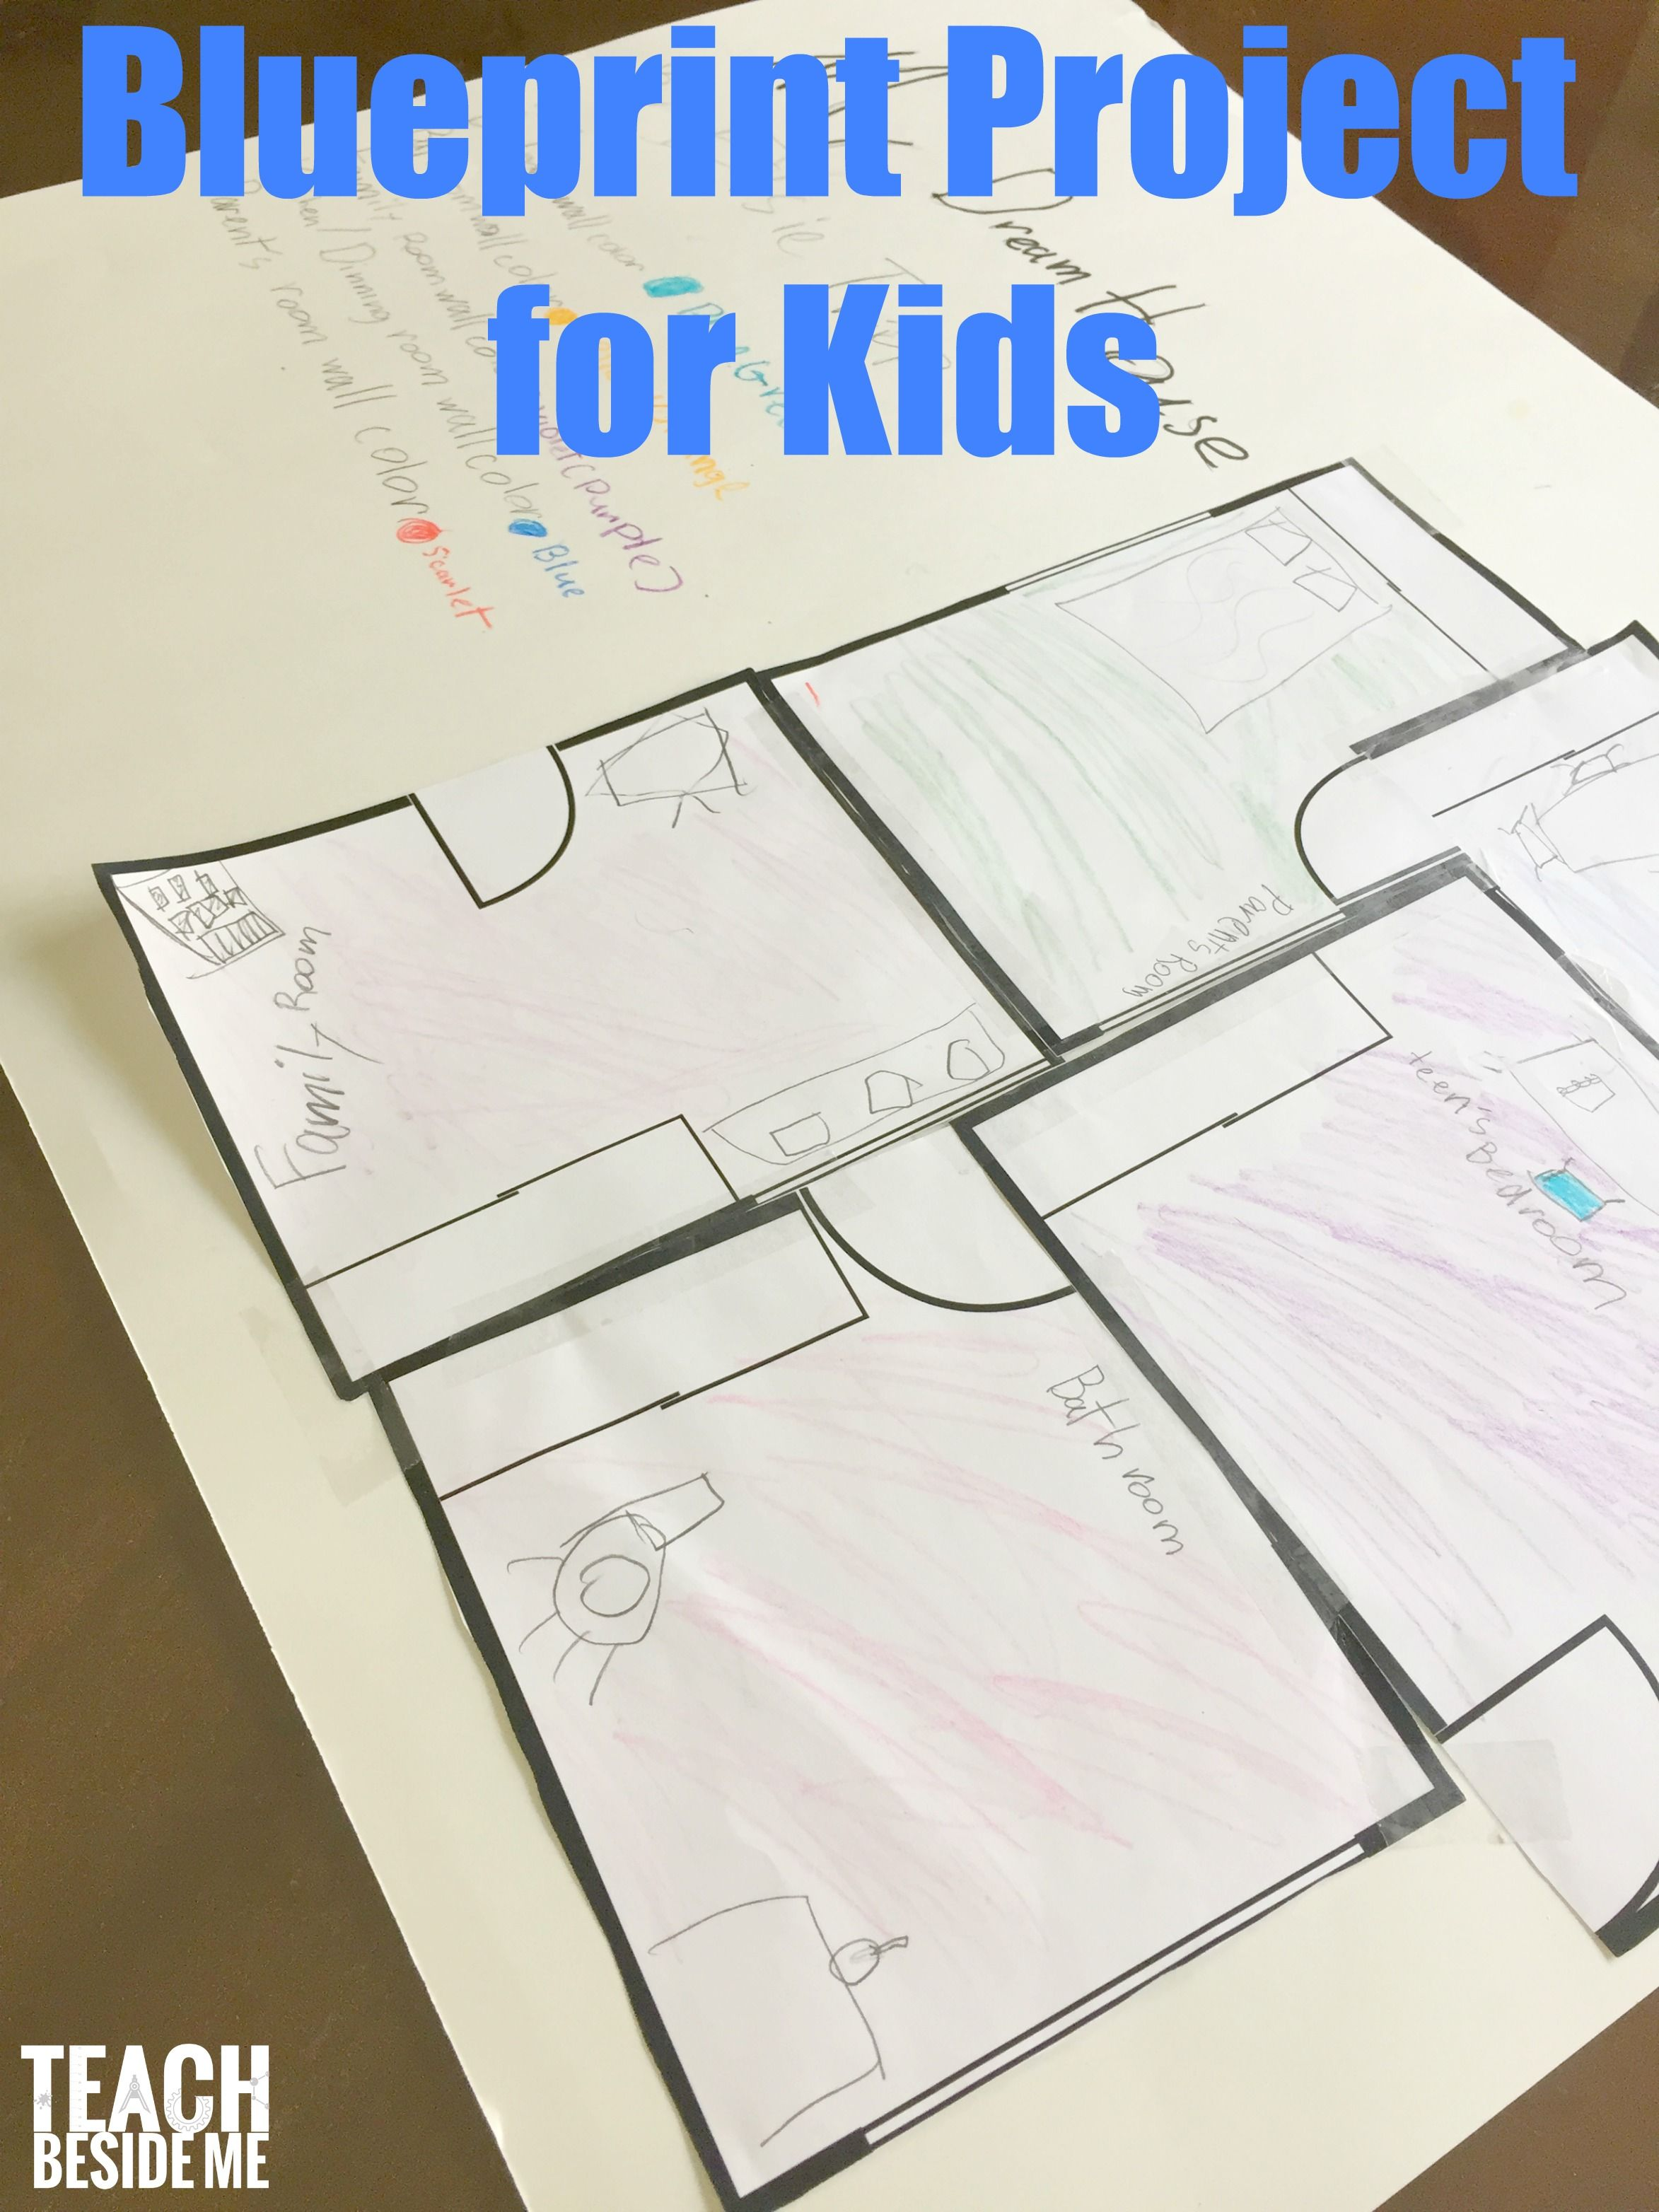 Blueprints and architecture for kids inspired by frank lloyd wright teaching blueprints and architecture to kids inspired by frank lloyd wright via karyntripp malvernweather Image collections